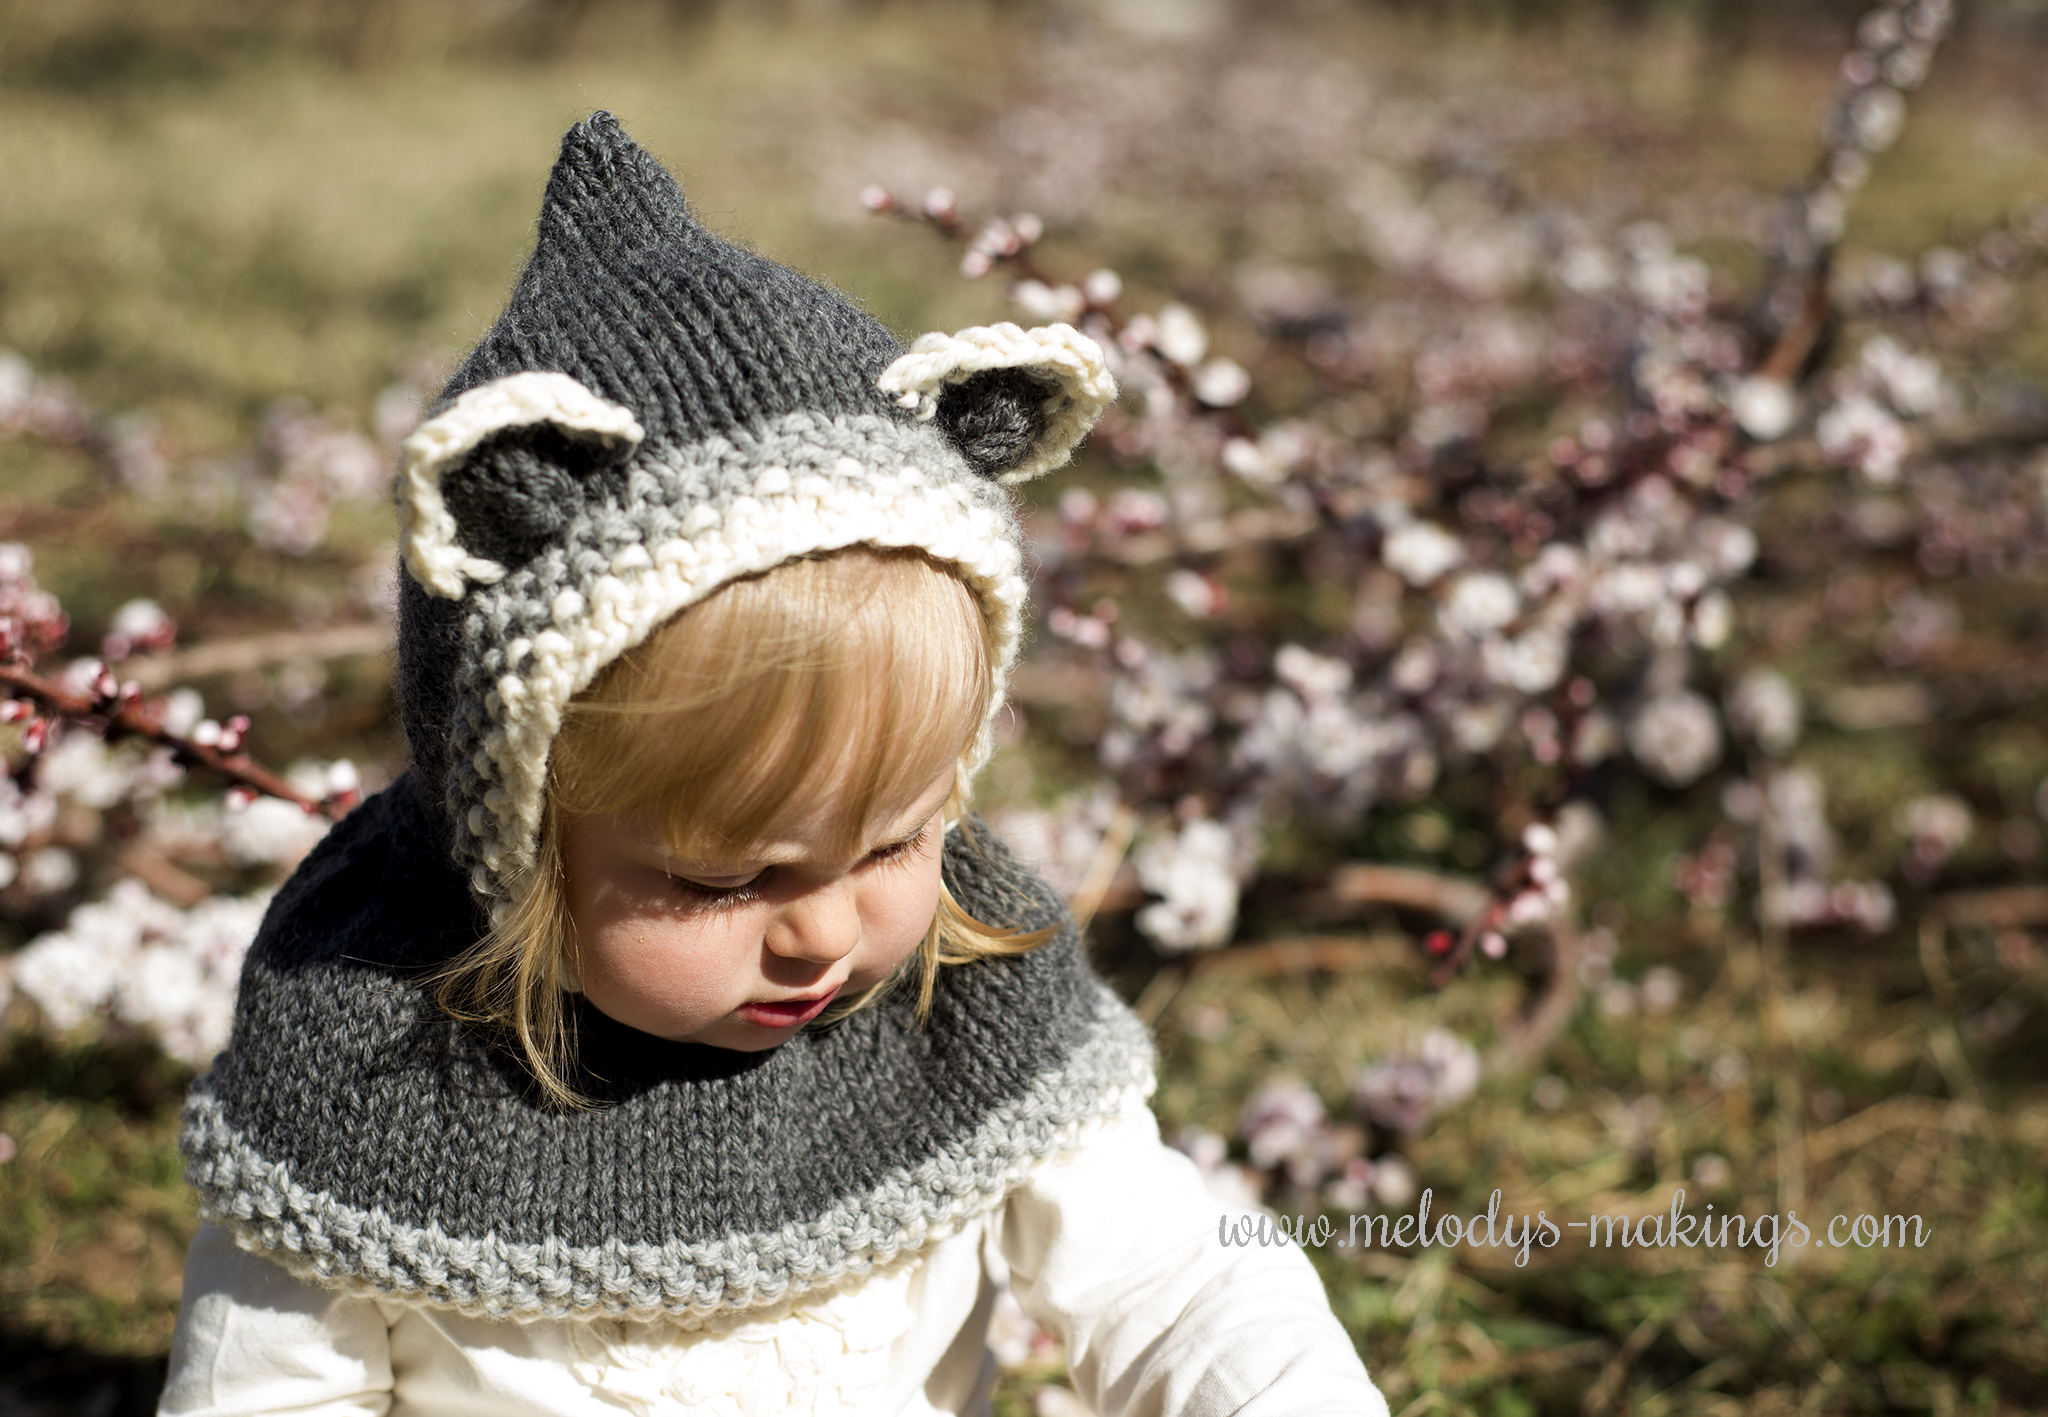 Hooded Cowl Knitting Pattern Ravelry : Sneaky Mommies Make These For Their Kids! Melodys Makings